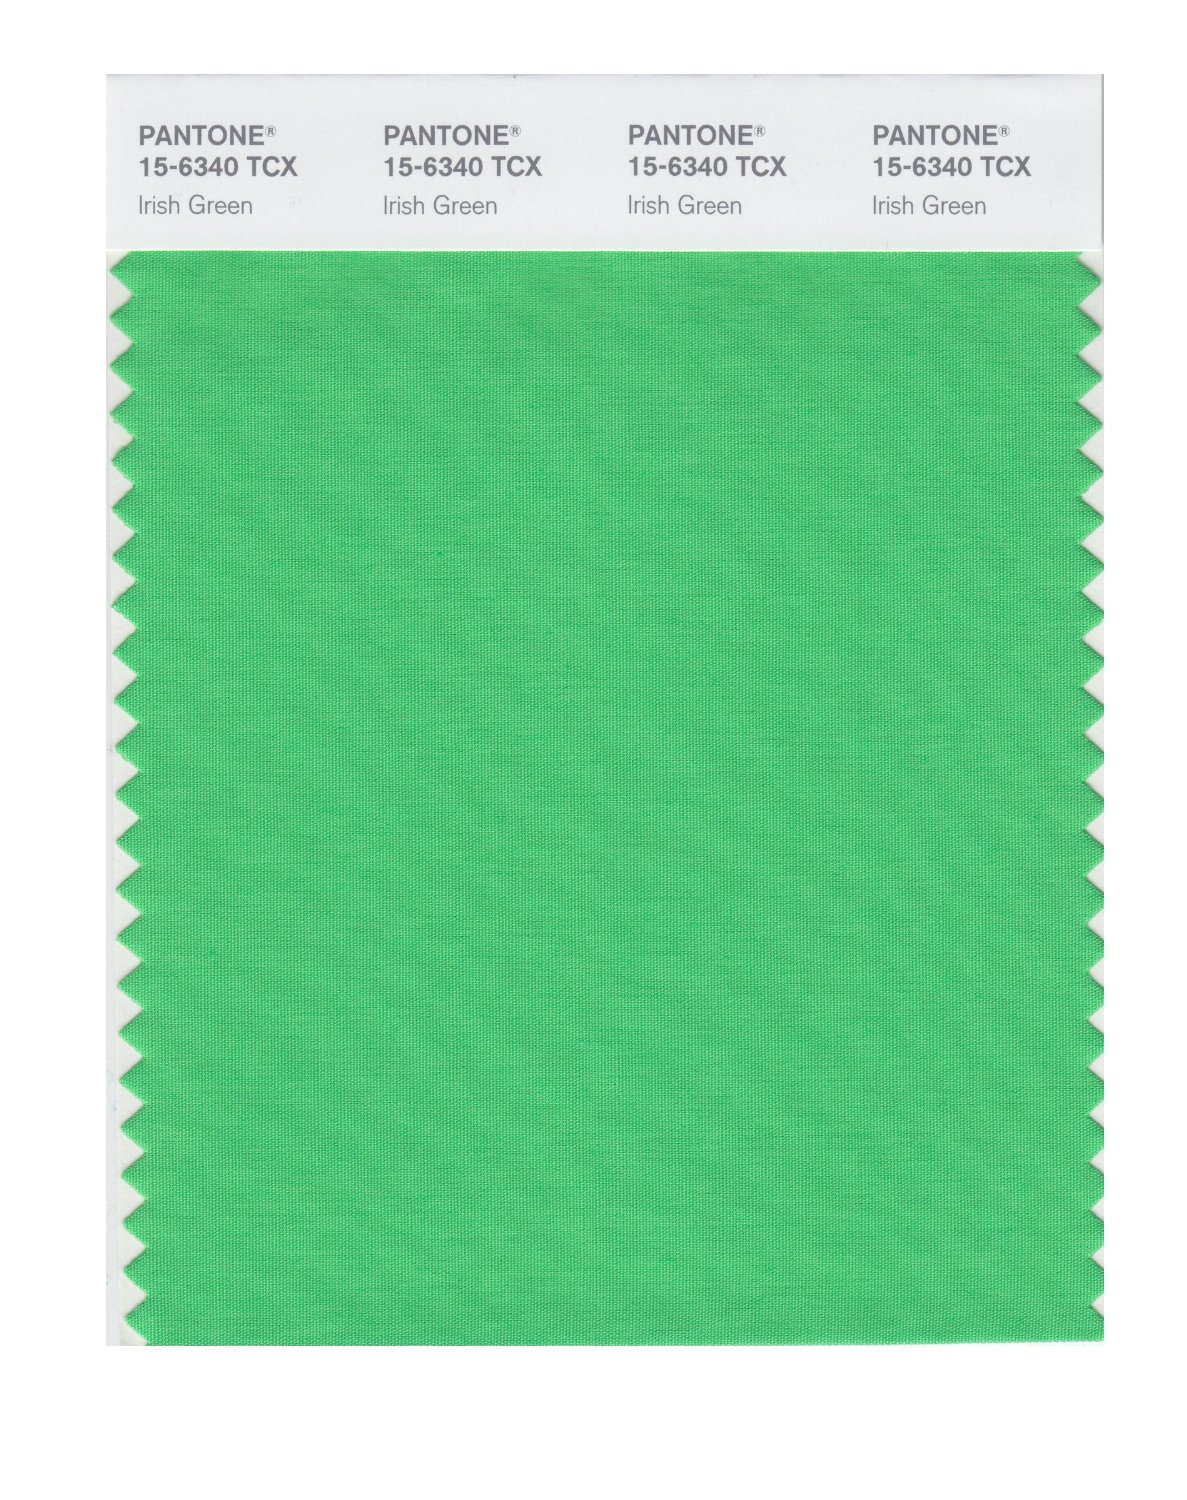 Pantone Smart Swatch 15-6340 Irish Green